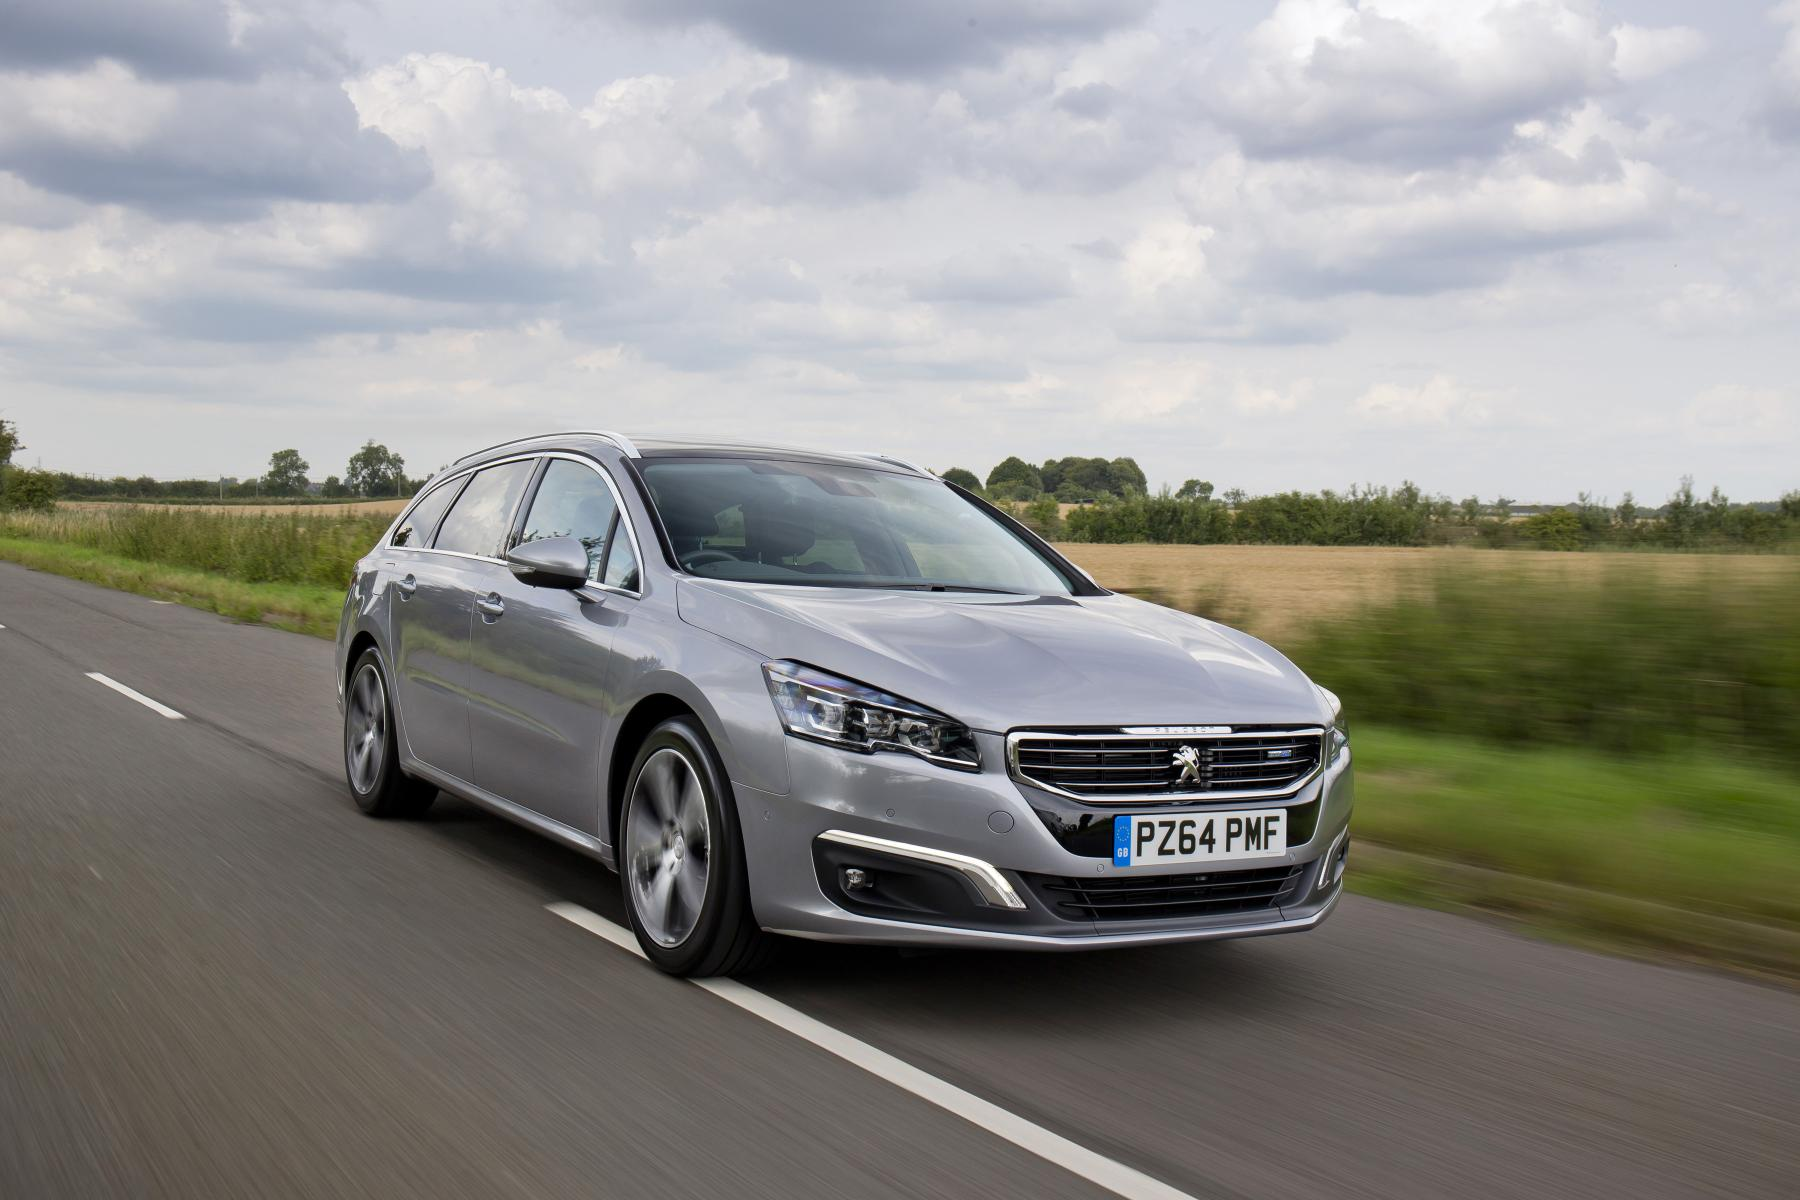 new peugeot 508 priced from 22 054 in the uk video autoevolution. Black Bedroom Furniture Sets. Home Design Ideas